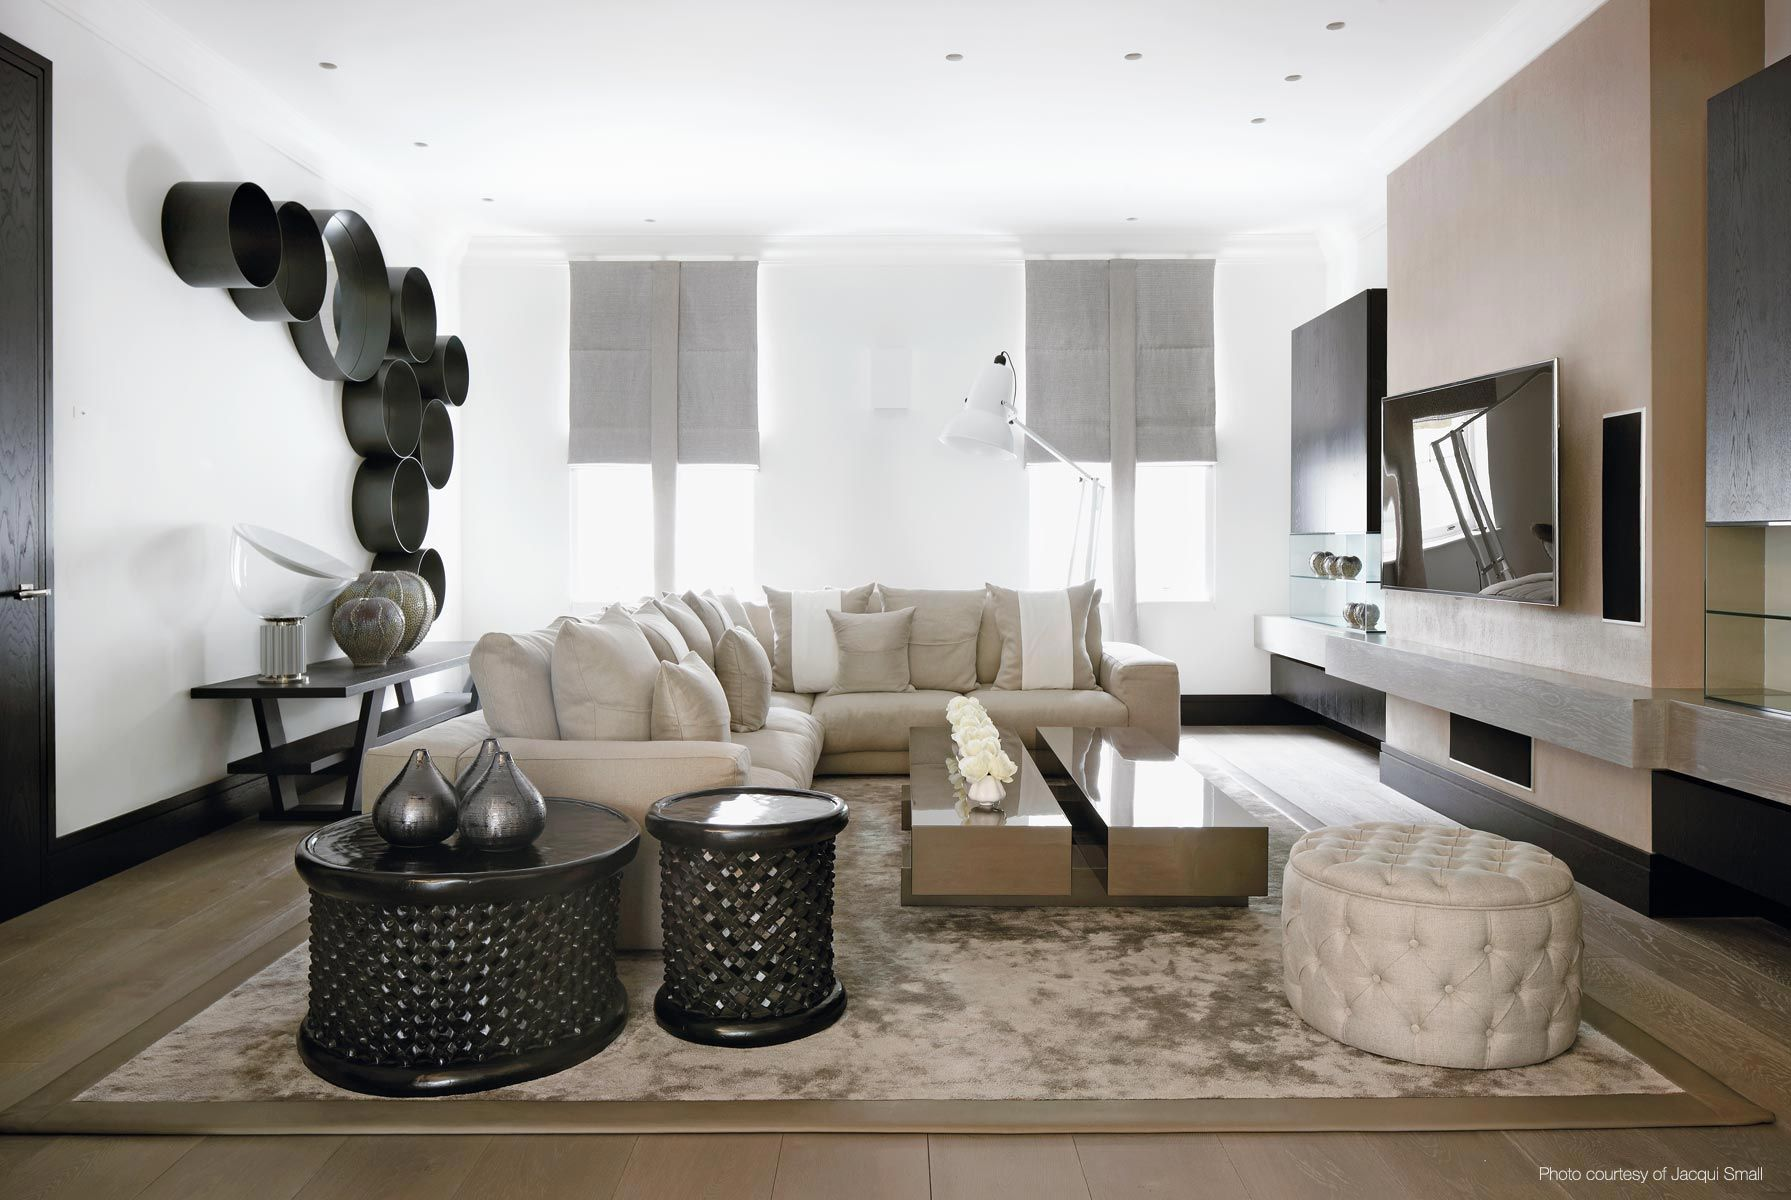 Living Room Design Contemporary Custom Kelly Hoppen Couturekellyhoppen Interior Designcontemporary Review